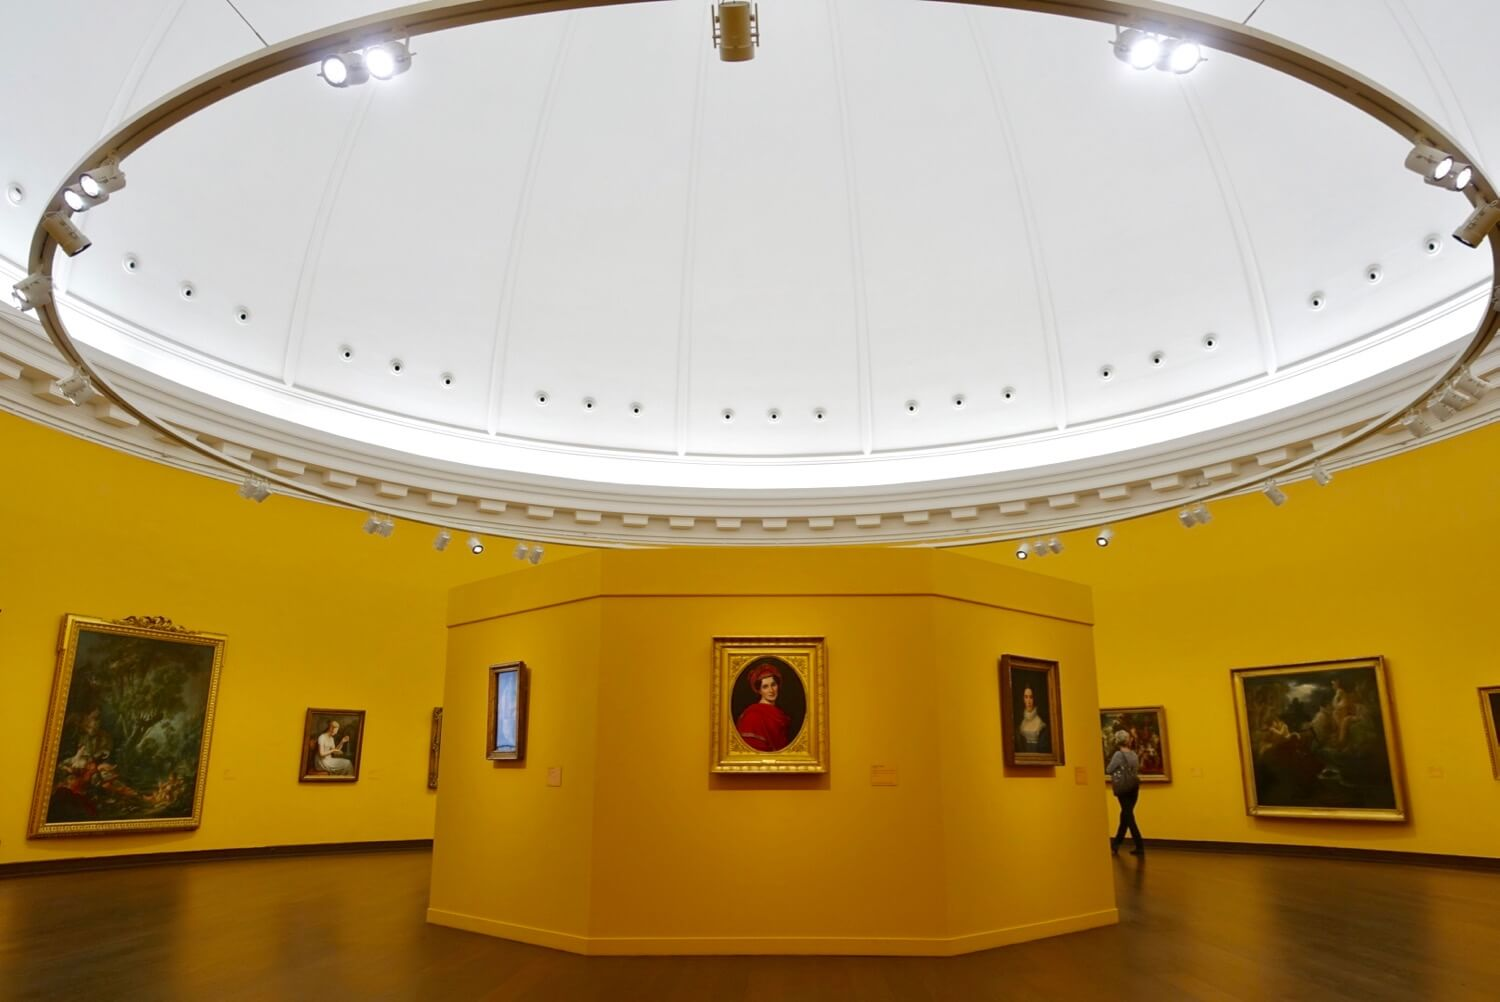 Kunsthalle gallery